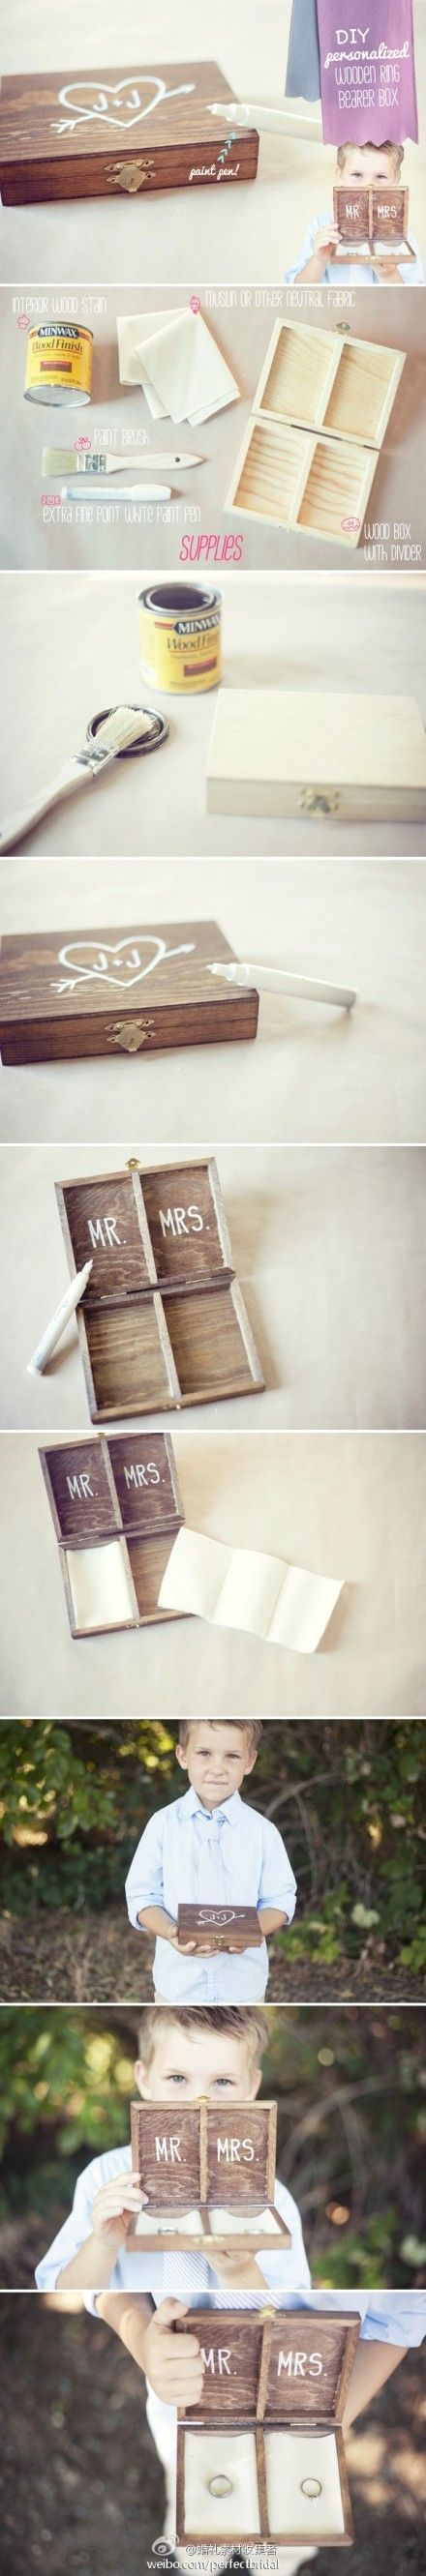 Ring box instead of ring bearer pillow. I LOVE this!